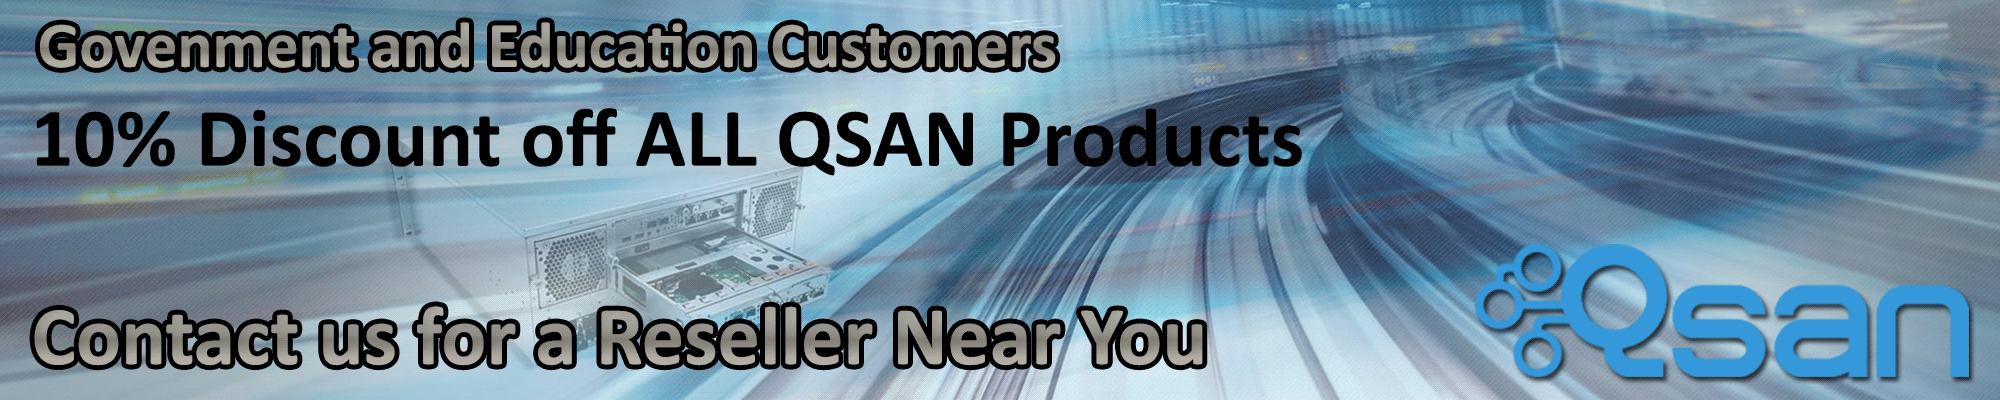 QSAN 10% Discount for Government and Education